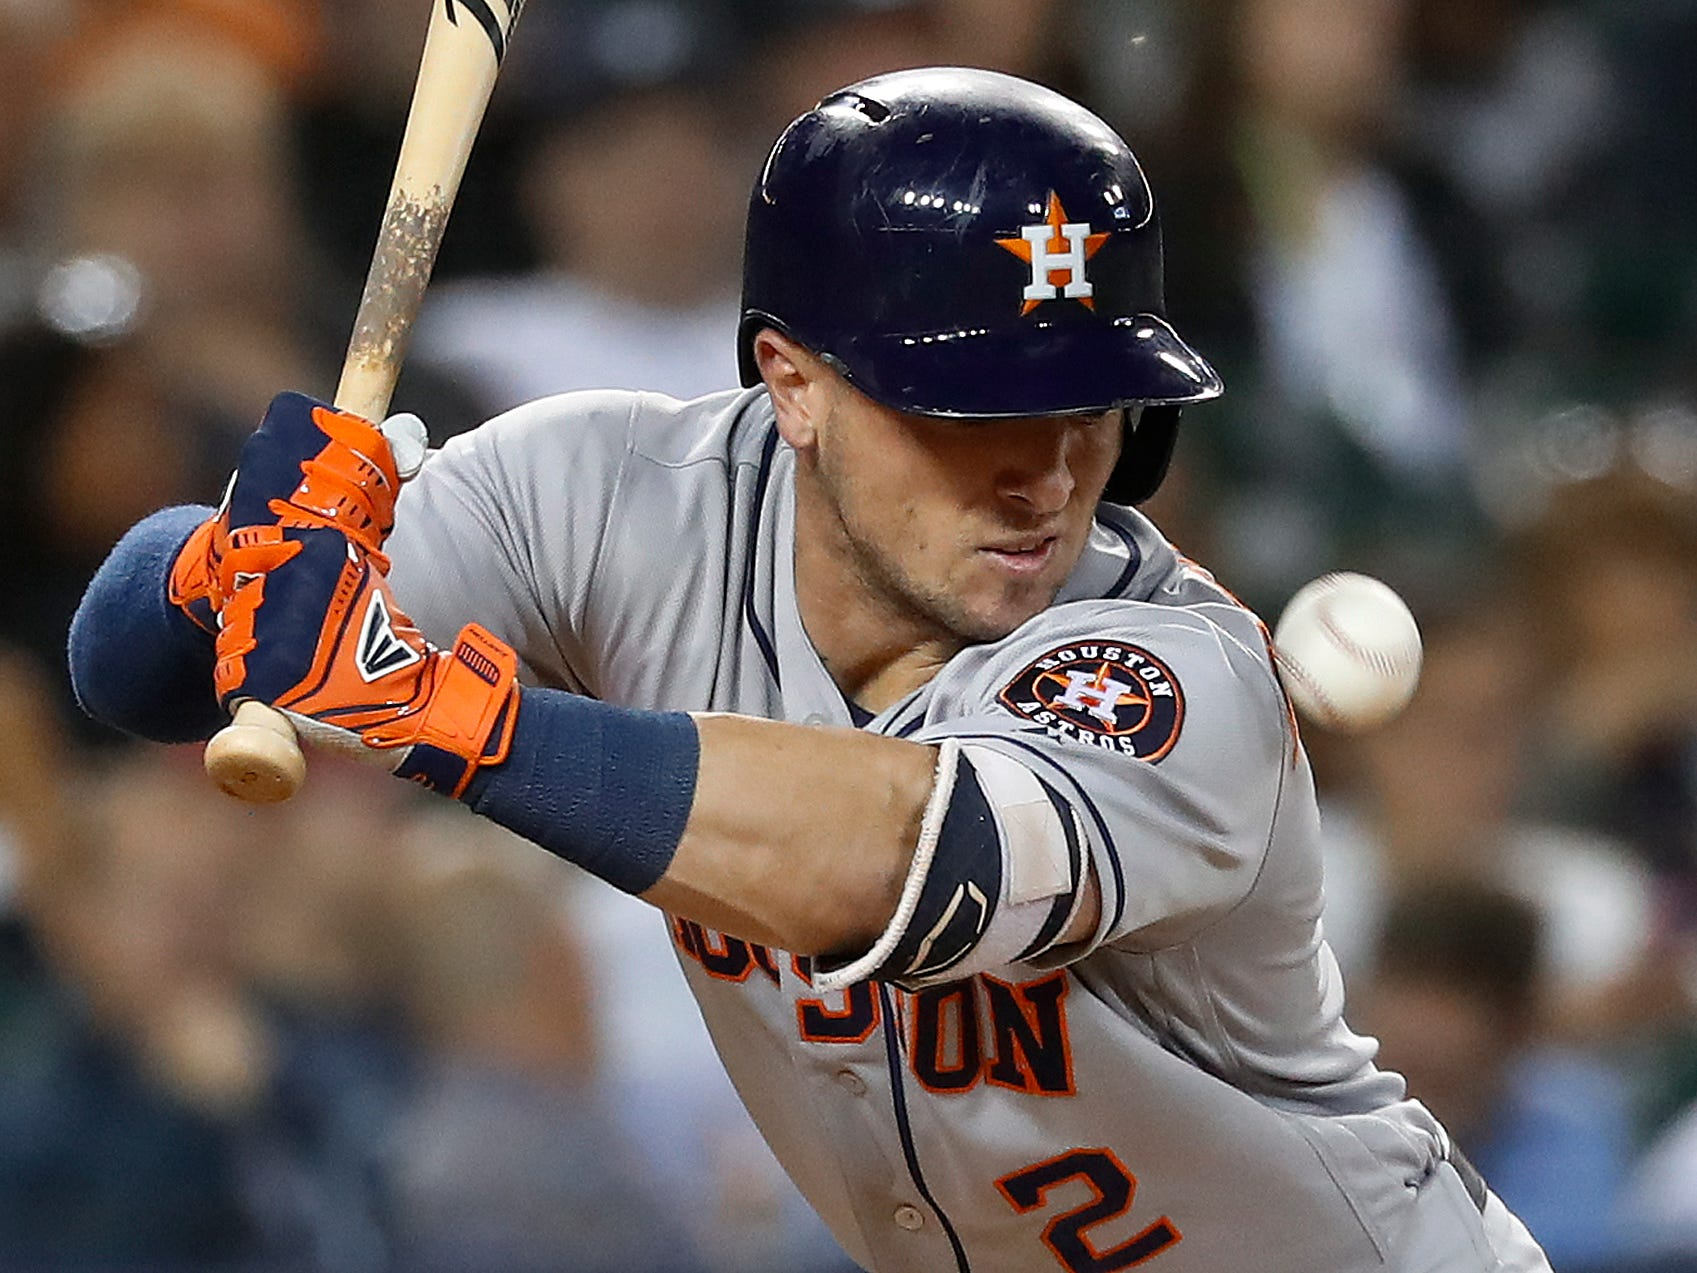 Houston Astros' Alex Bregman is hit by a pitch from Detroit Tigers pitcher Louis Coleman in the seventh inning.